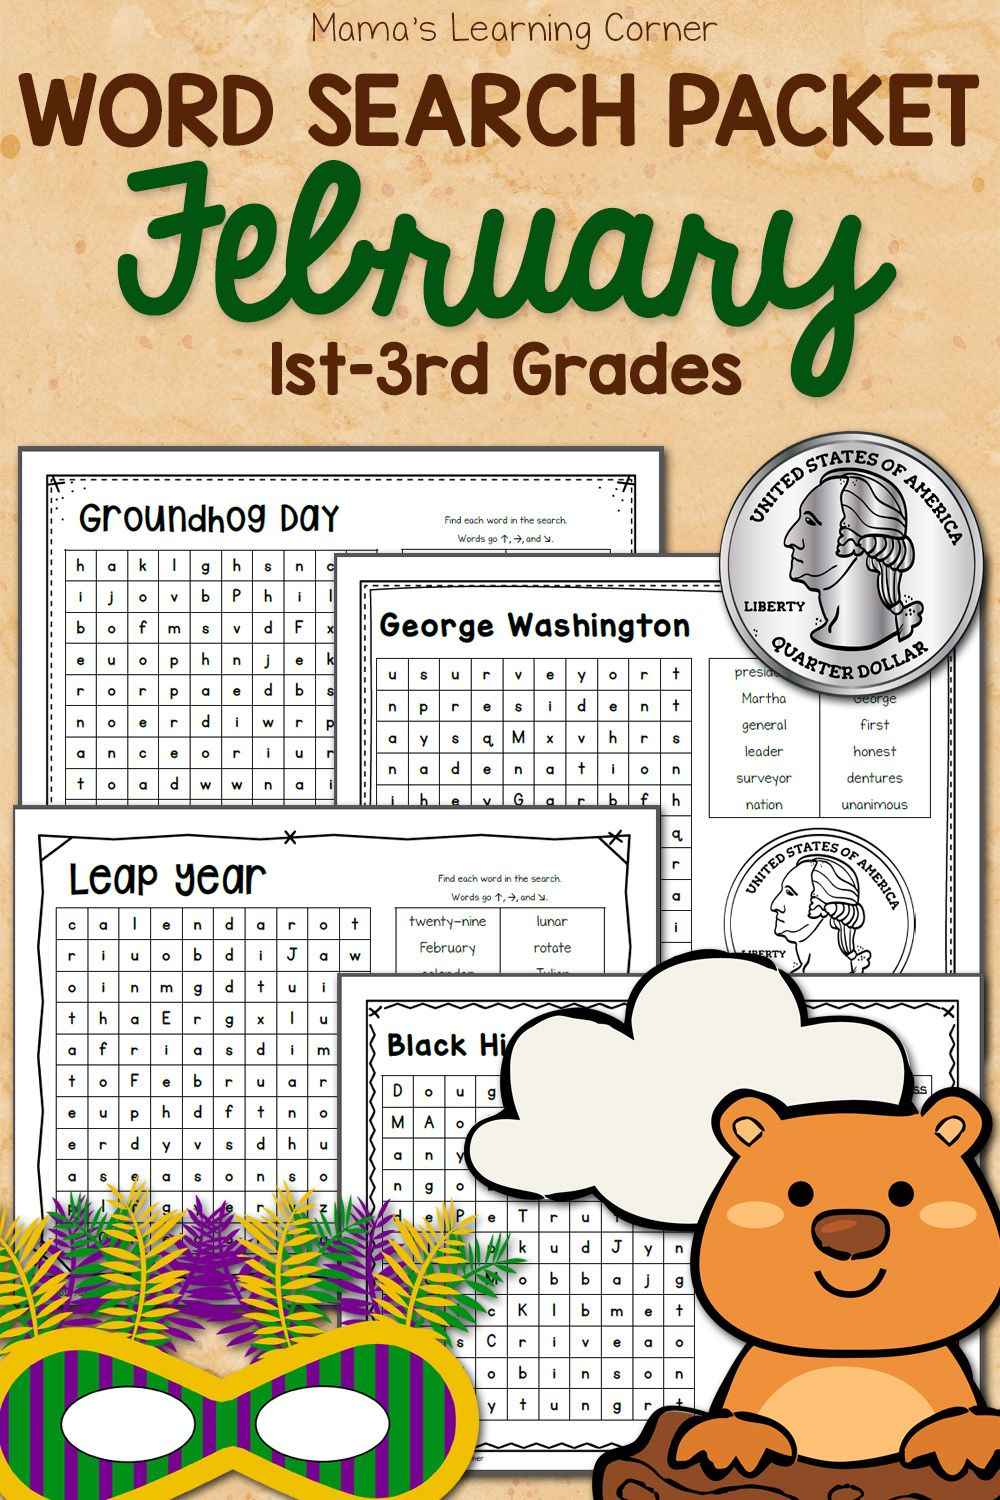 February Word Search Packet Word Seach Winter Activities Preschool Groundhog Day [ 1500 x 1000 Pixel ]